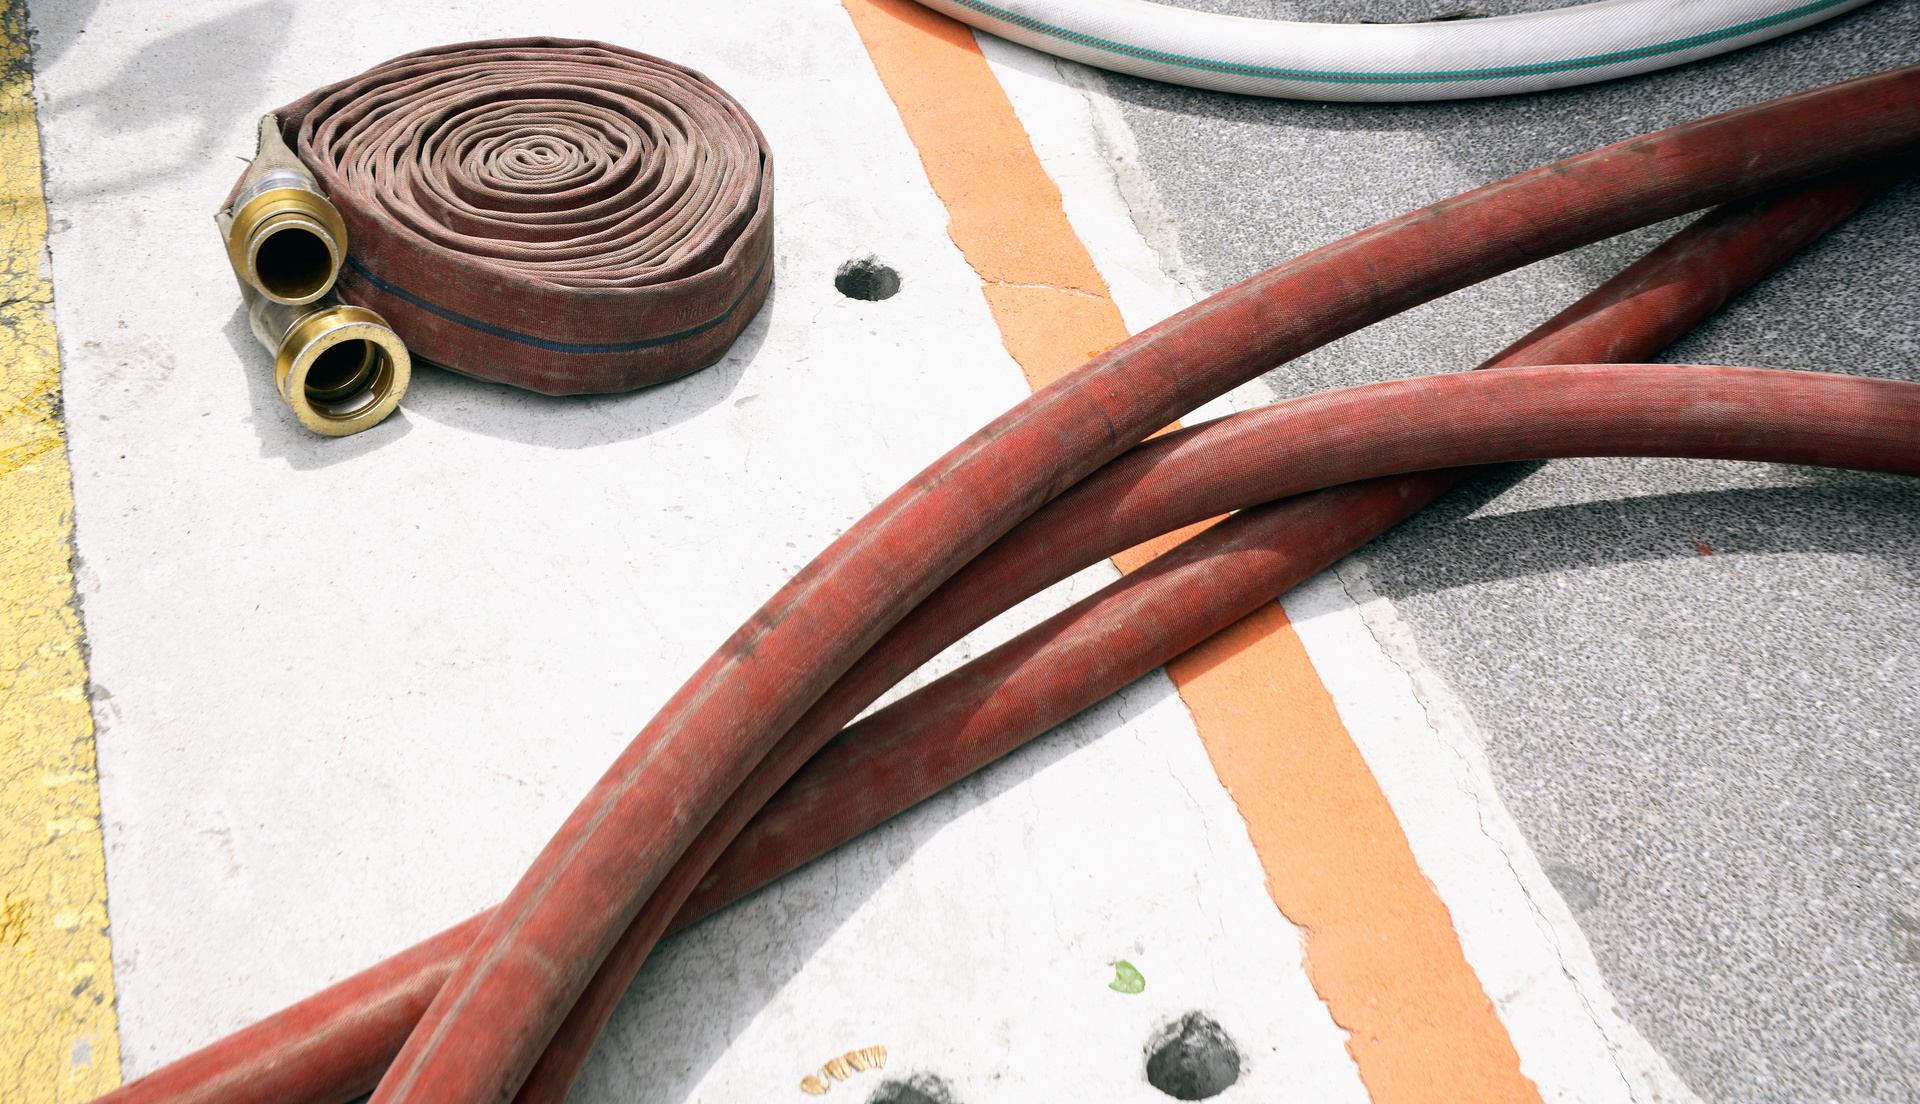 A series of hoses used for pumping